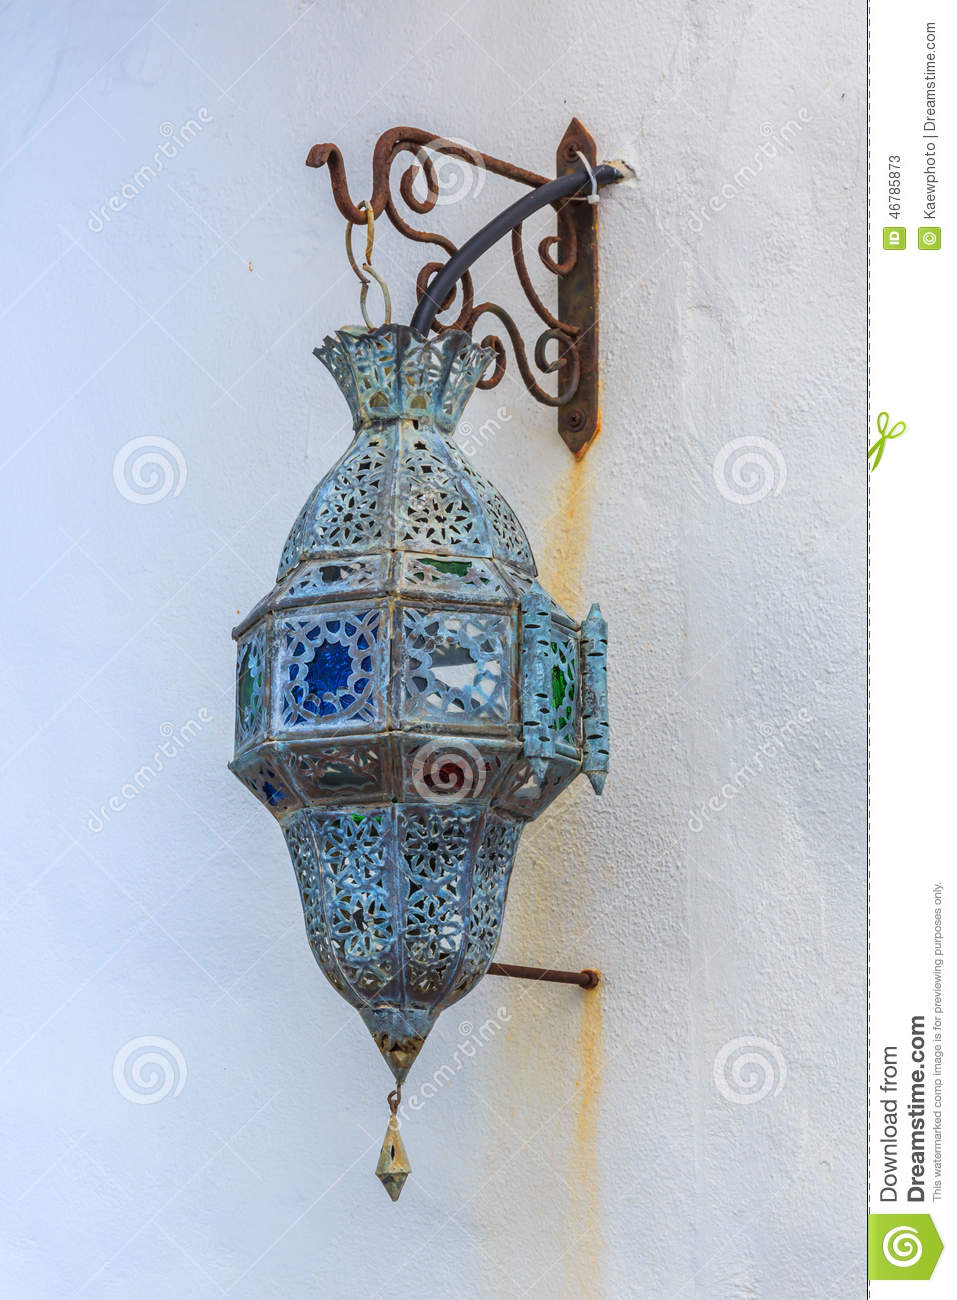 Traditional Arabic Lamp Used For Ornamental Buildings Stock Image ... for Traditional Arabic Lamp  104xkb